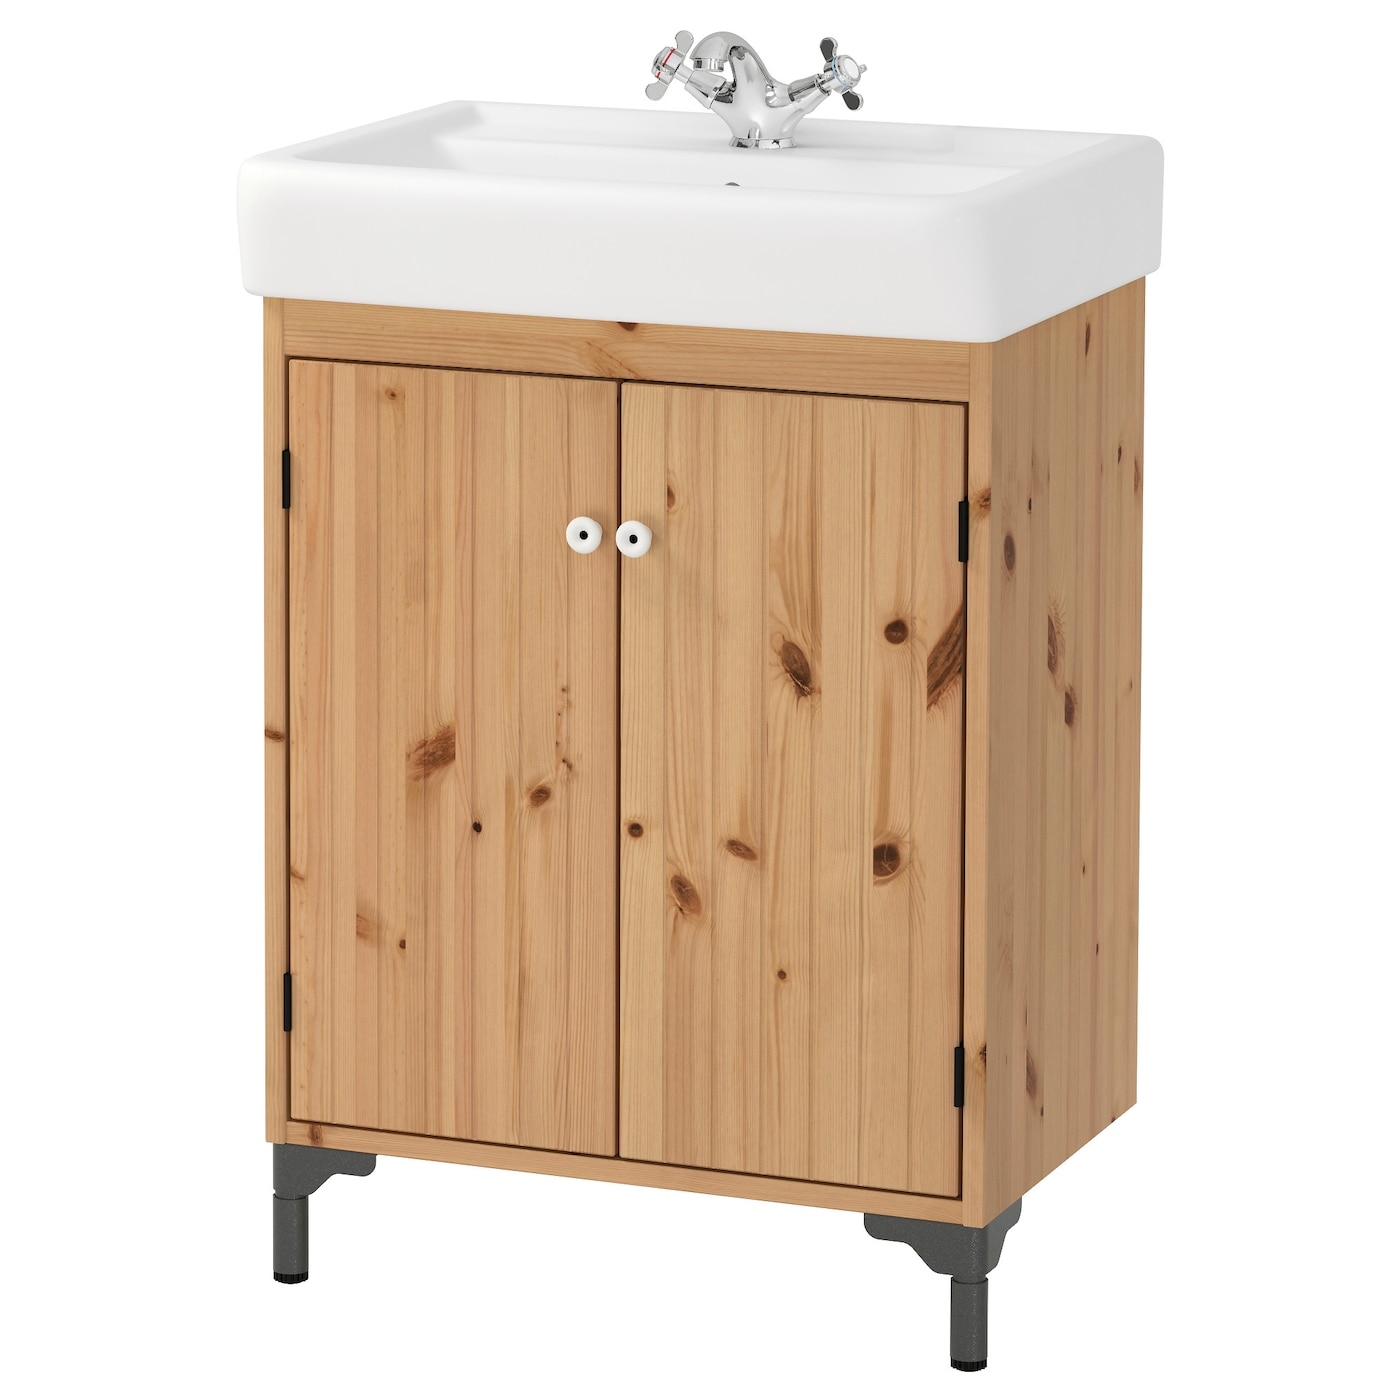 Bathroom vanity units ikea ireland dublin for Bathroom wash basin with cabinet